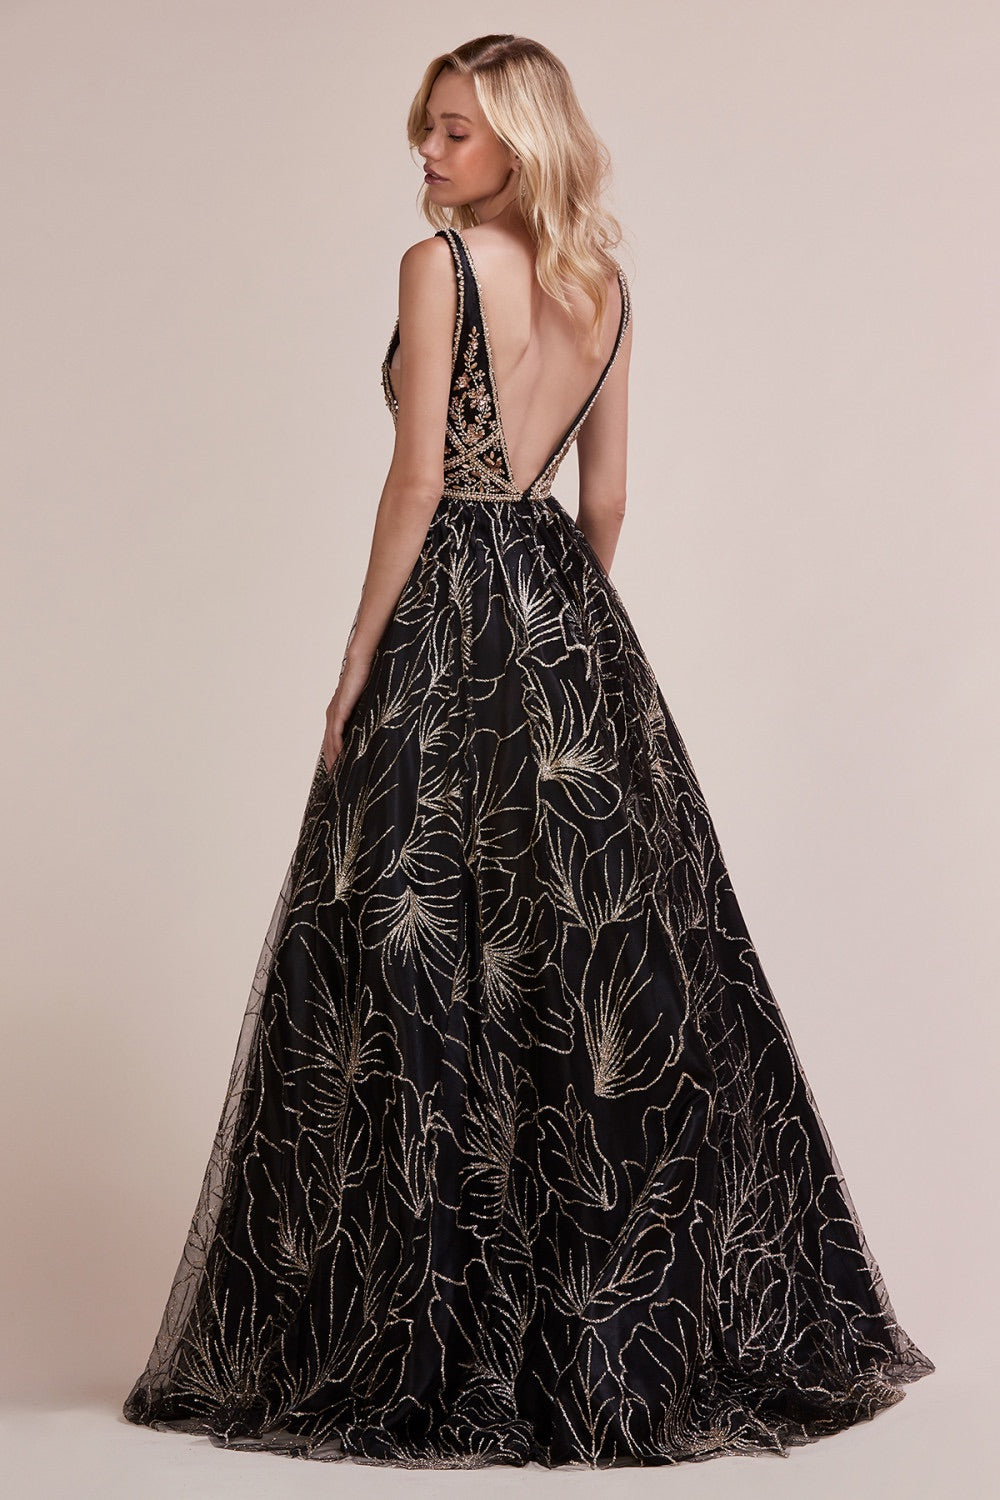 AL Zinnia Glitz Black Gold Gown